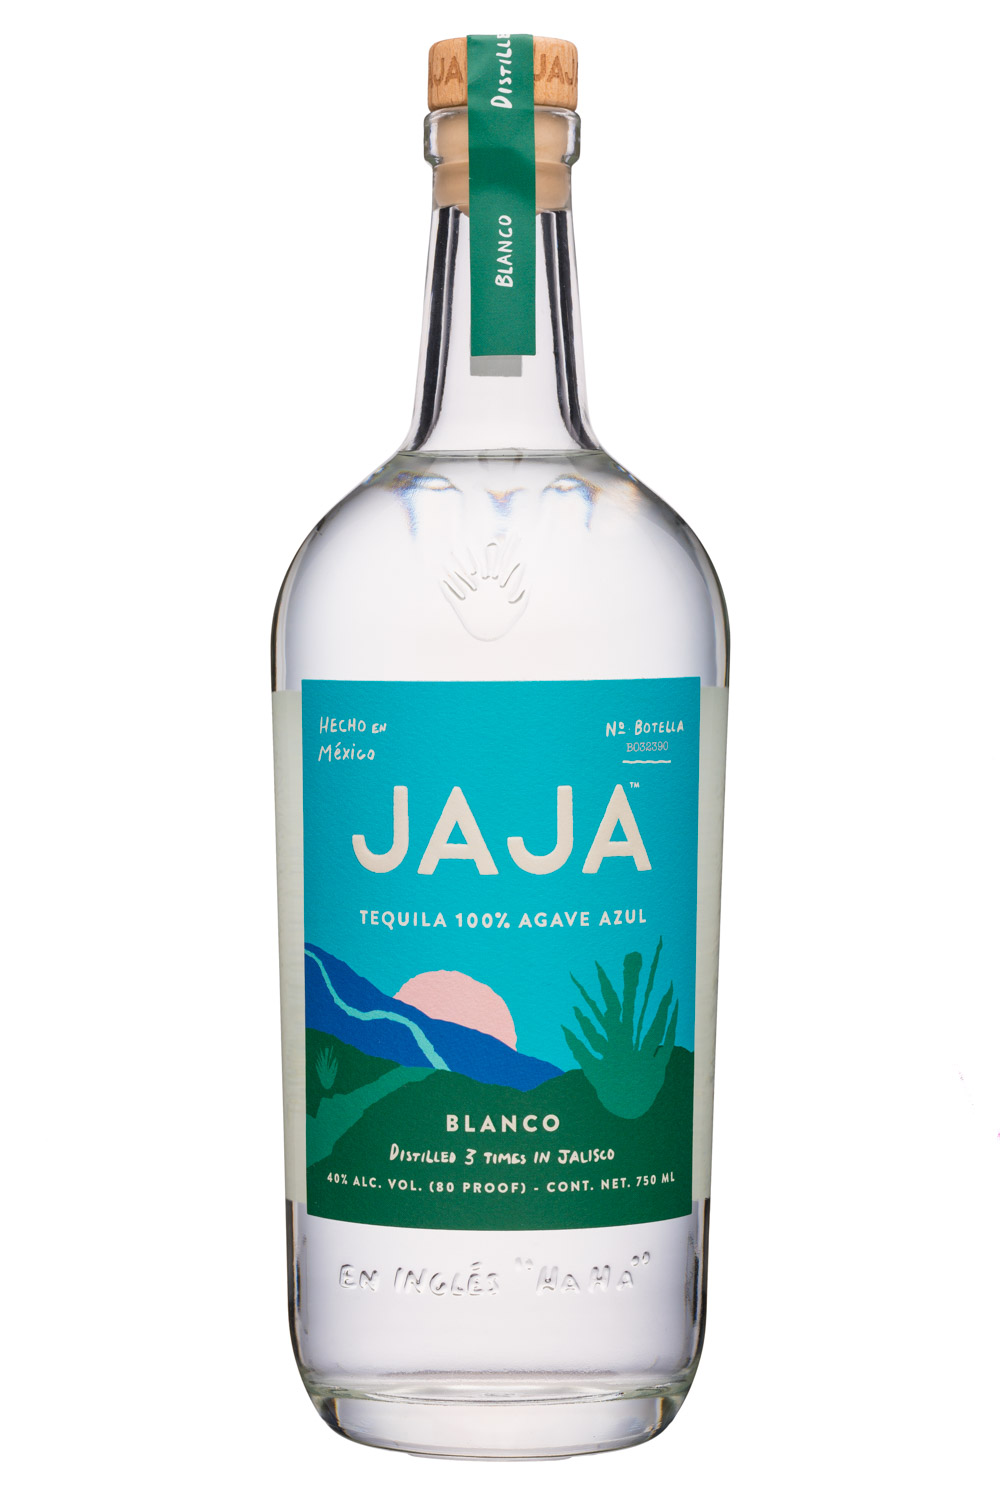 Tequila 100% Agave Azul - Blanco